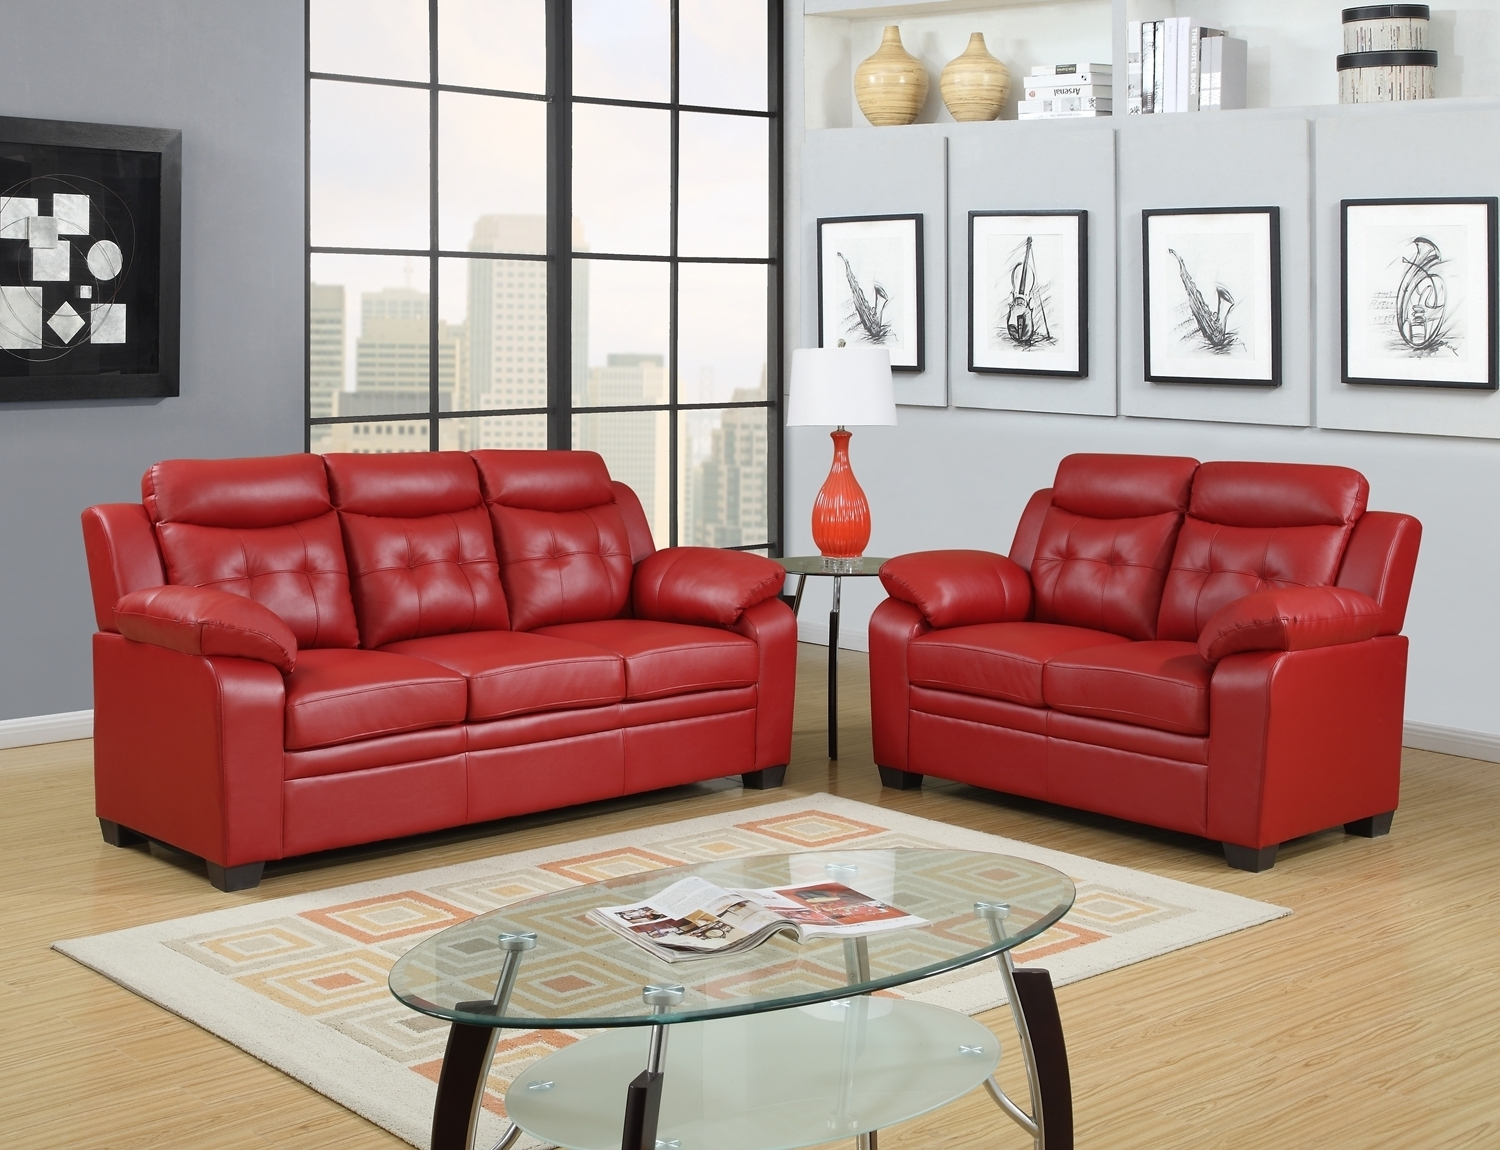 Red Leather Couches Regarding Recent Epic Red Leather Couch 13 In Sofas And Couches Set With Red (View 7 of 15)